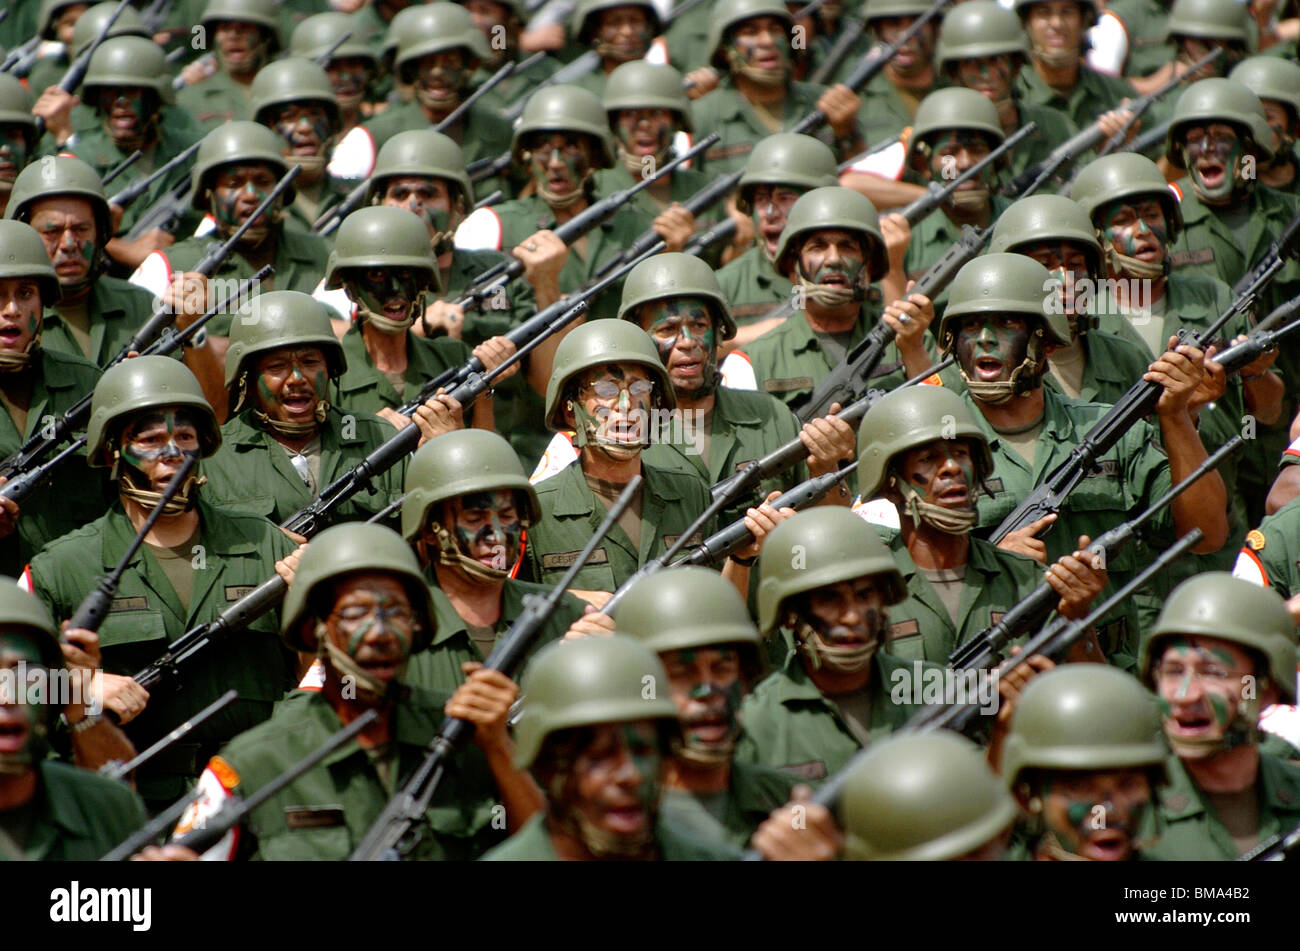 Army reservists march in a military parade in Valencia, Venezuela, June 24, 2006. Photo/Chico Sanchez Stock Photo